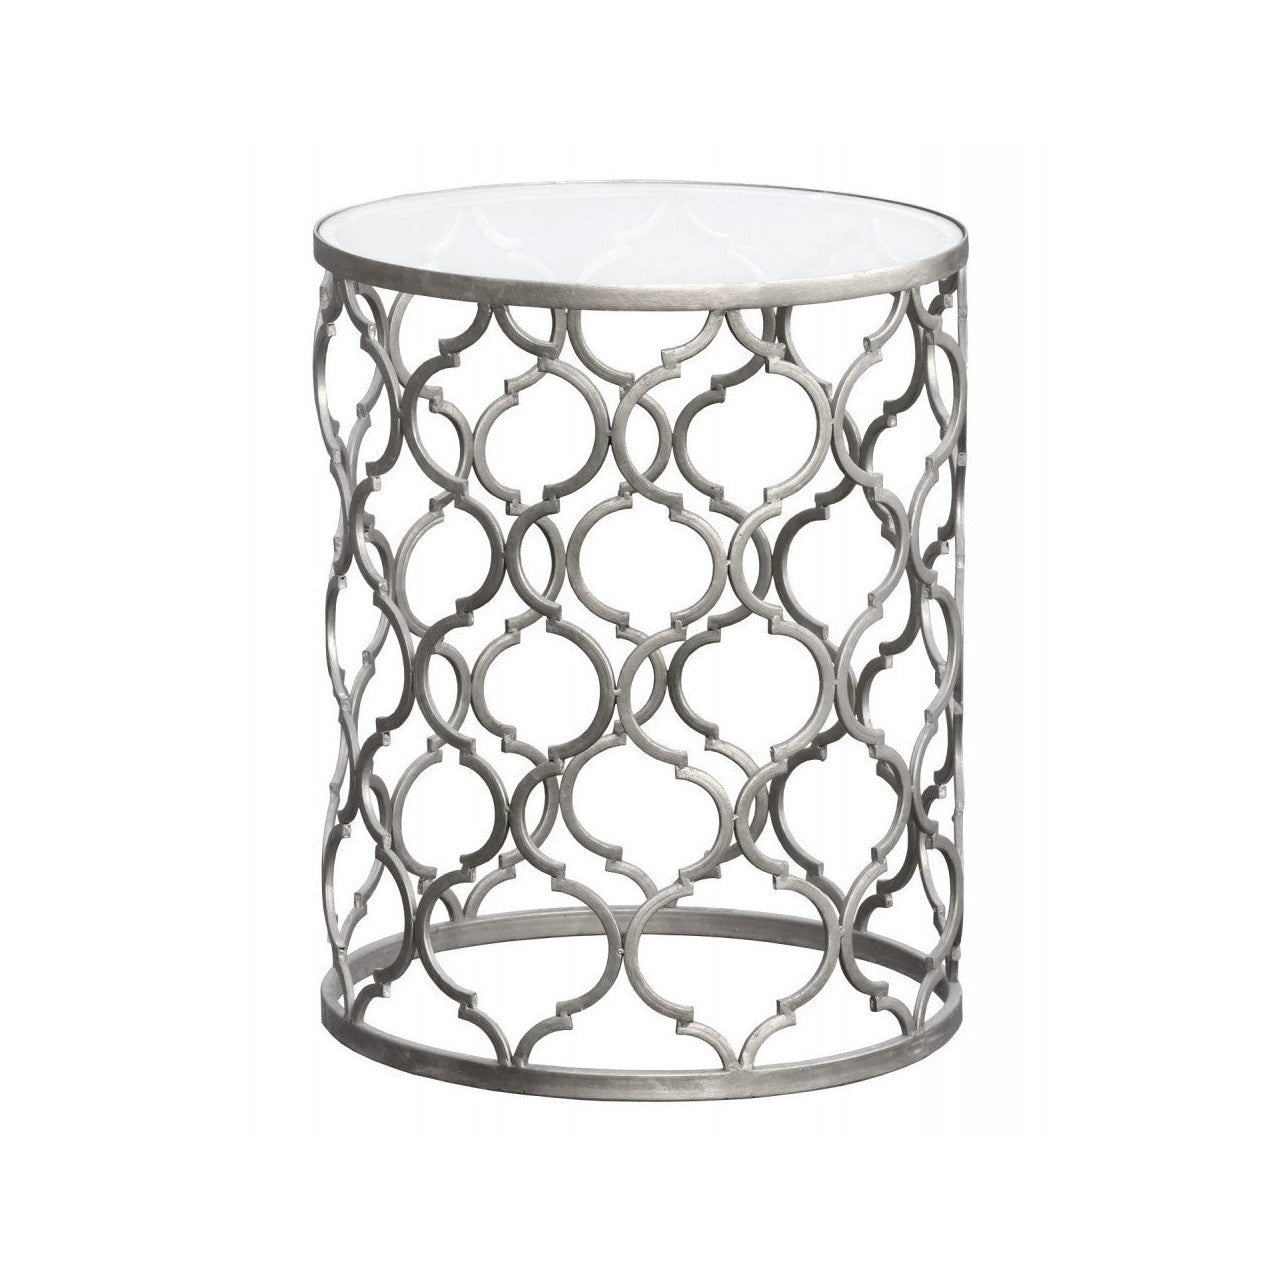 Gin shu parisienne round metal side table silver furniture retail therapy interiors